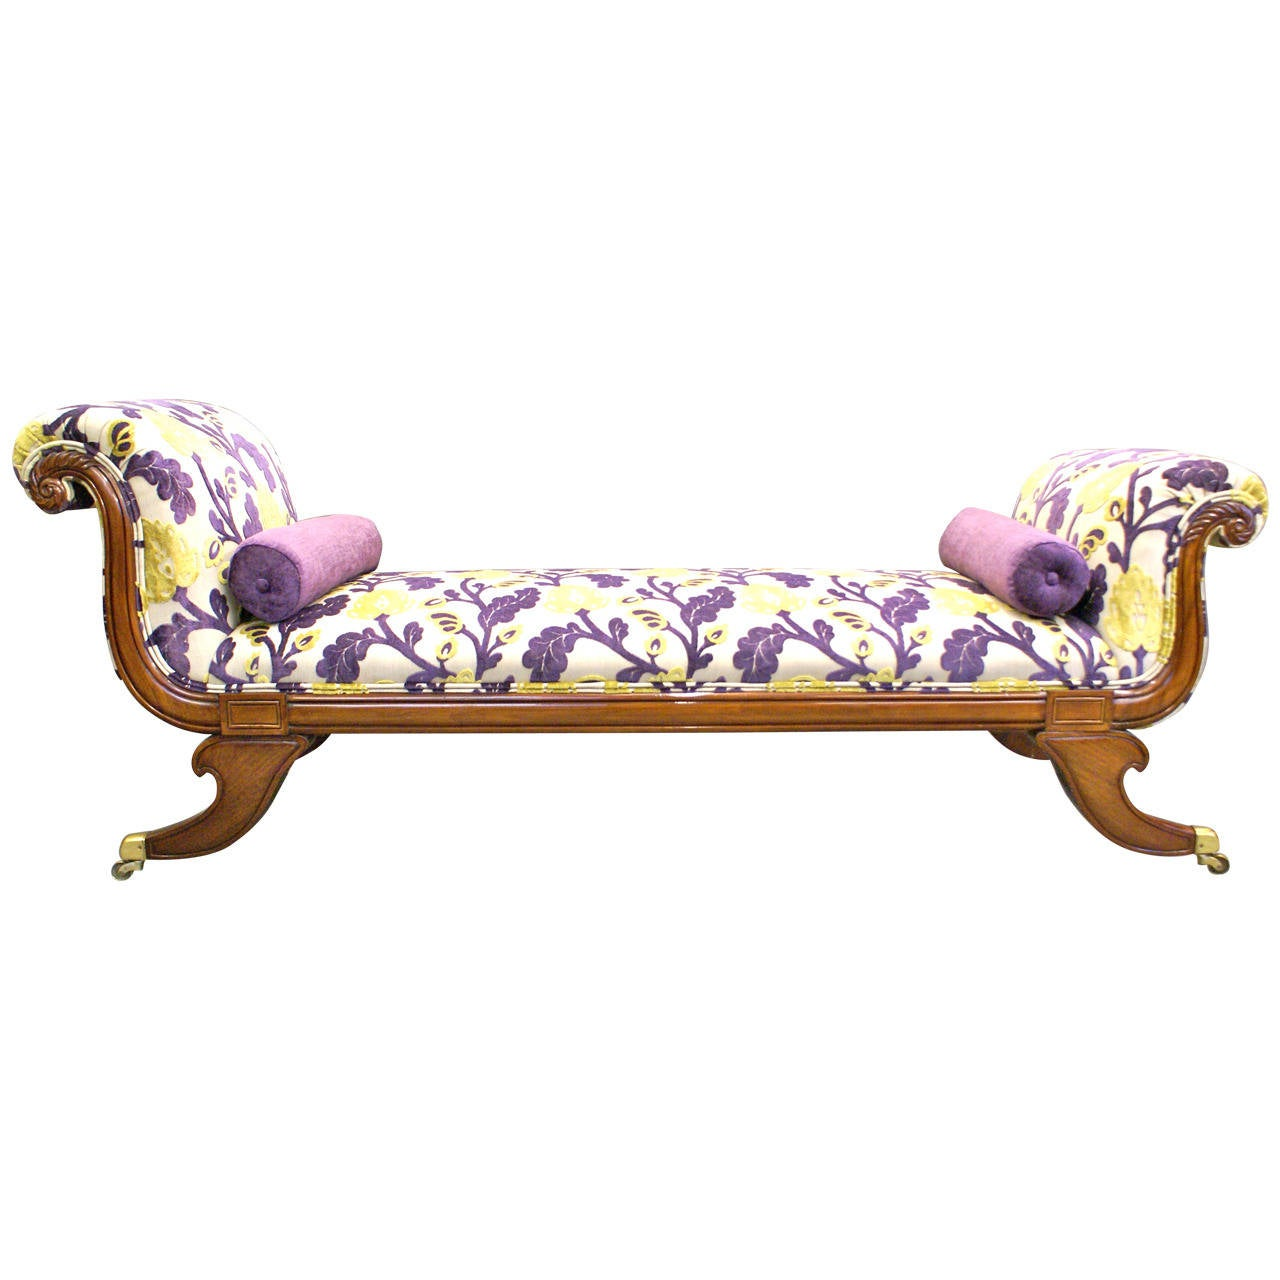 Superb and rare double sided chaise lounge or window seat for Chaises longues doubles